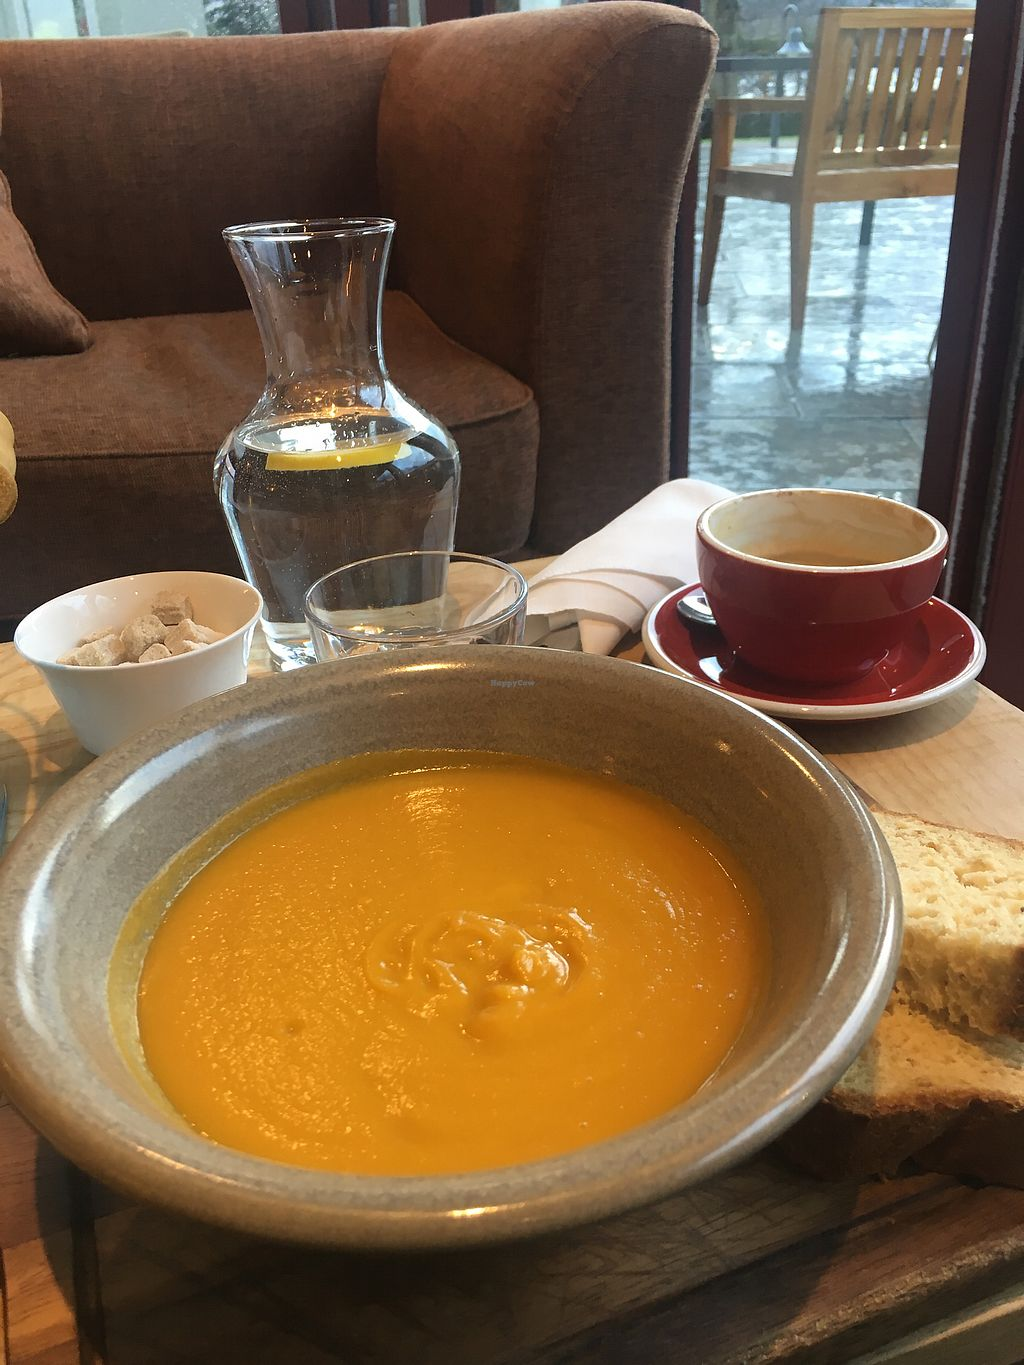 """Photo of Ramsbeck - Another Place Hotel  by <a href=""""/members/profile/Annebumble"""">Annebumble</a> <br/>Vegan soup  <br/> January 2, 2018  - <a href='/contact/abuse/image/106150/342157'>Report</a>"""